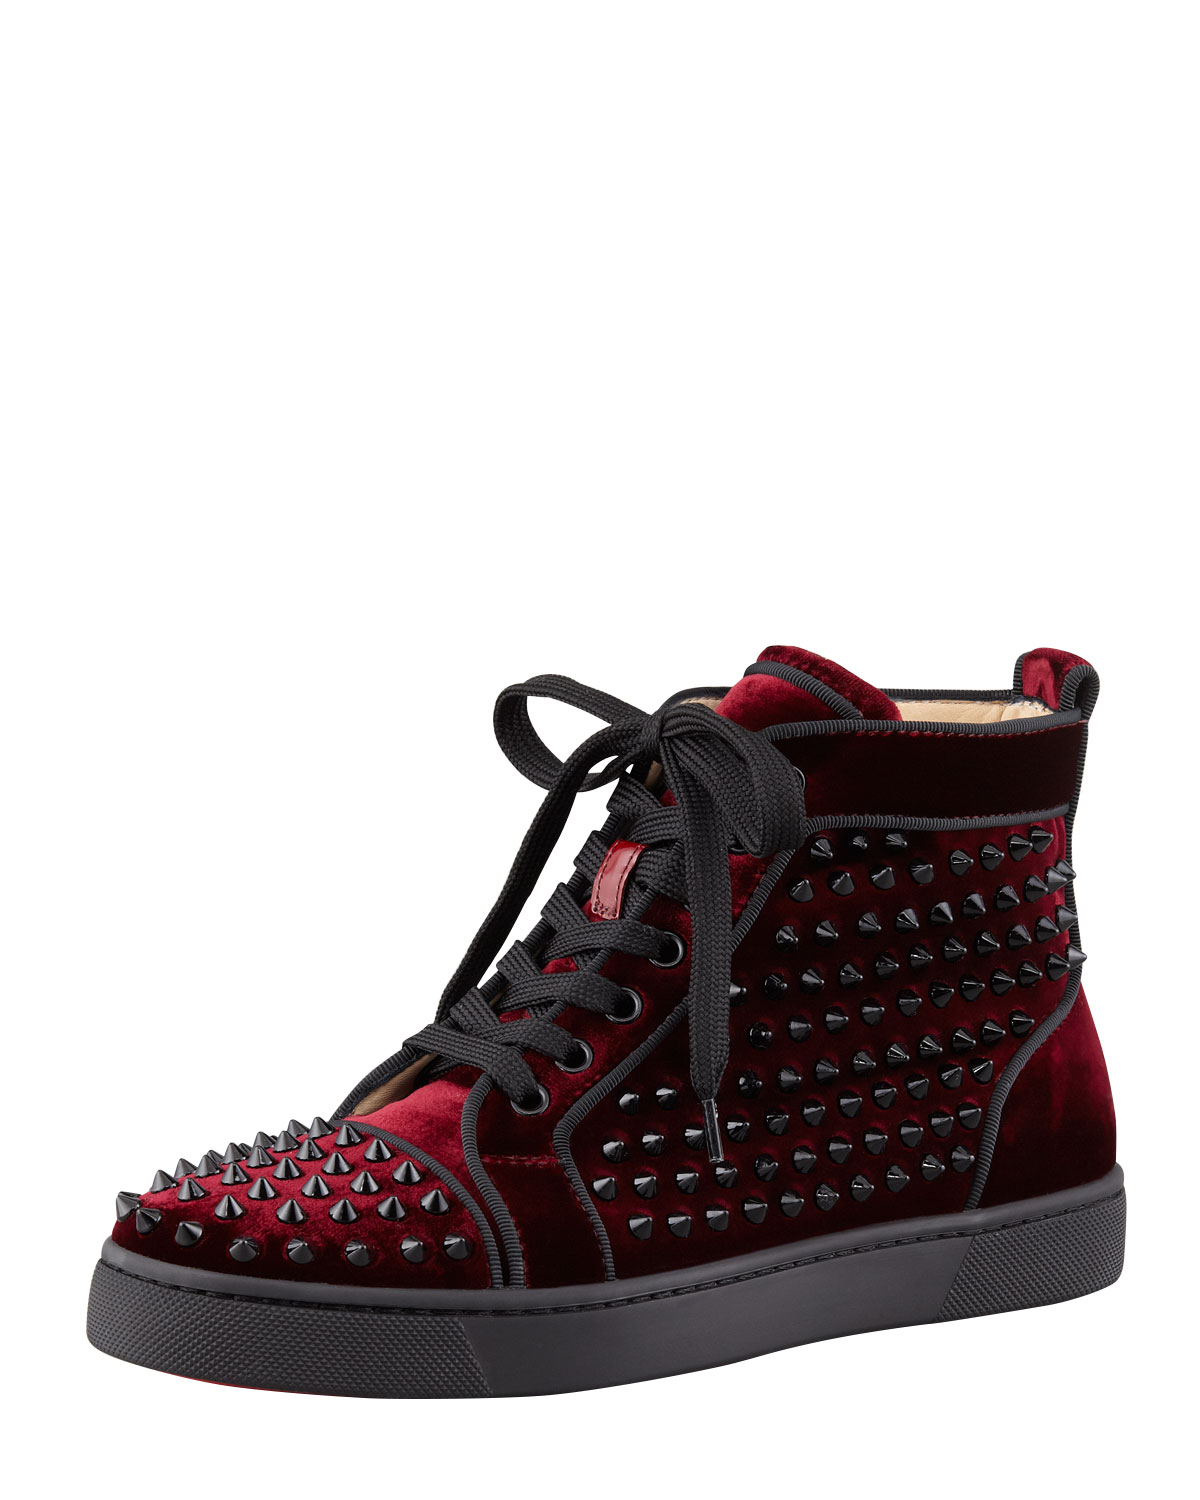 christian louboutin high top sneakers for women. Black Bedroom Furniture Sets. Home Design Ideas